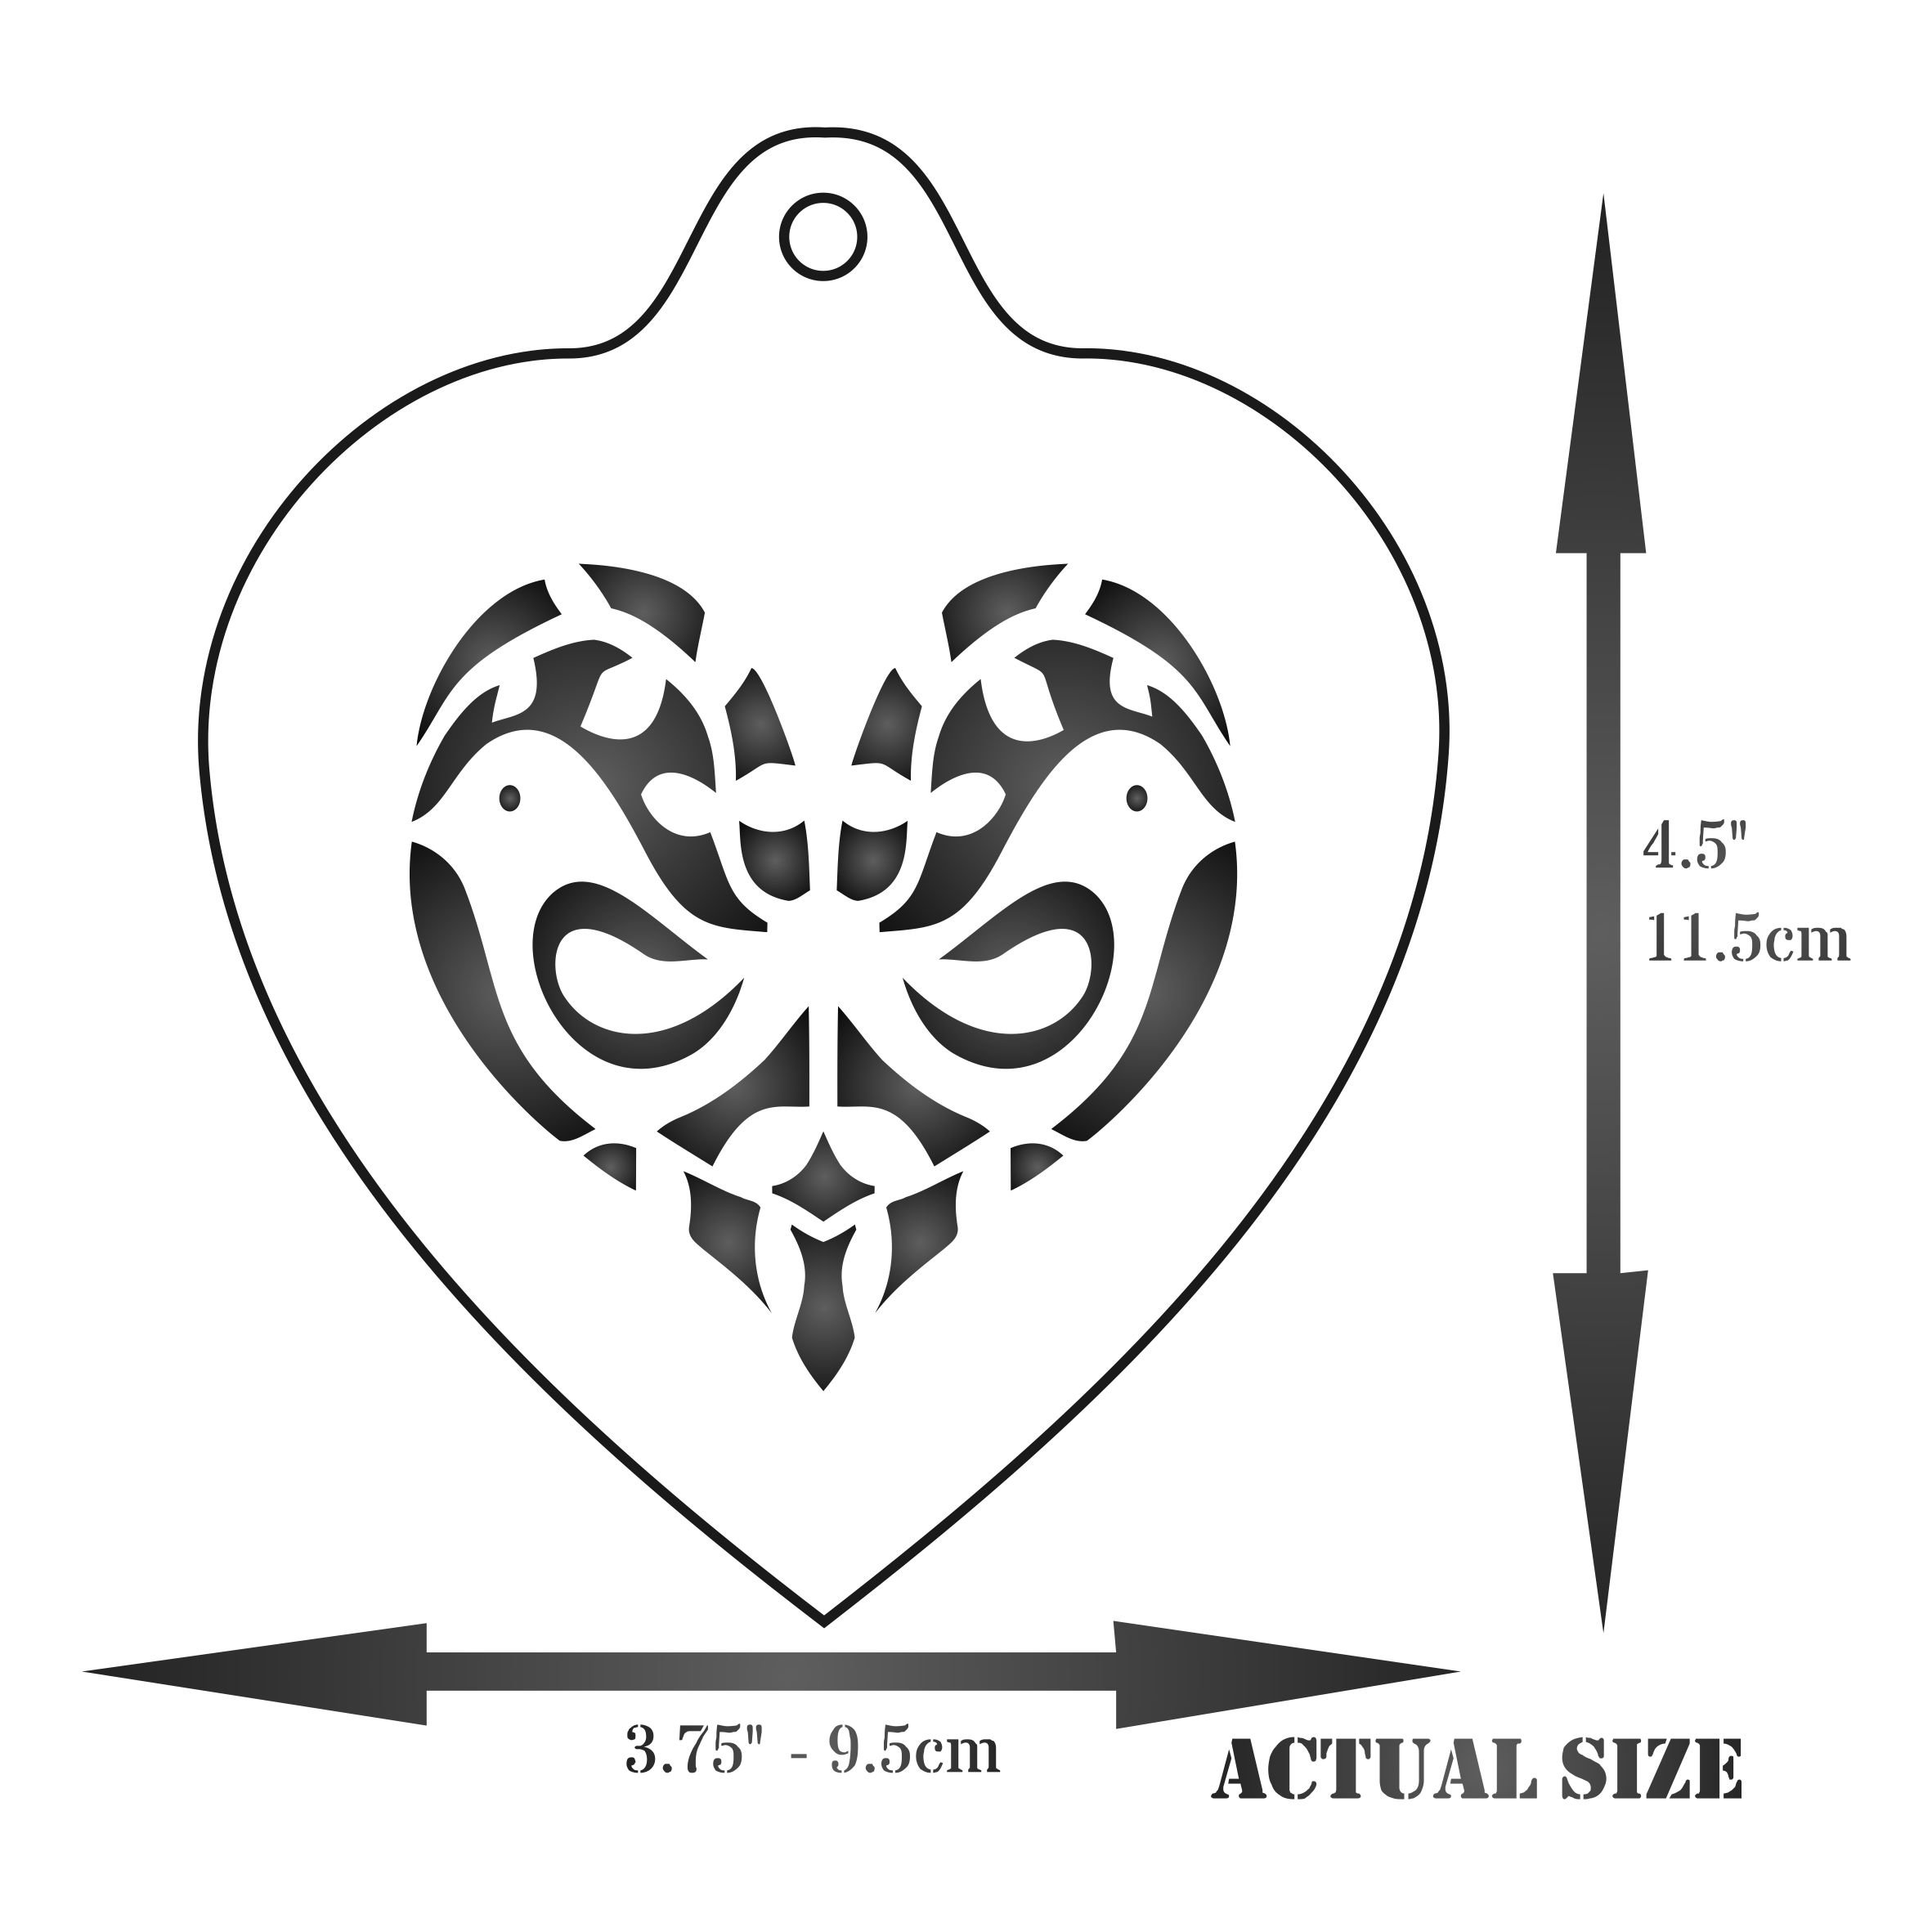 Heart Coffee Set Stencil - 9 Designs - Reusable Barista Stencils for Decorating Cappuccino Coffee Latte Cupcakes Cakes Cookies Scrapbooking Stenciling and more... by Stencils for Walls (Image #2)